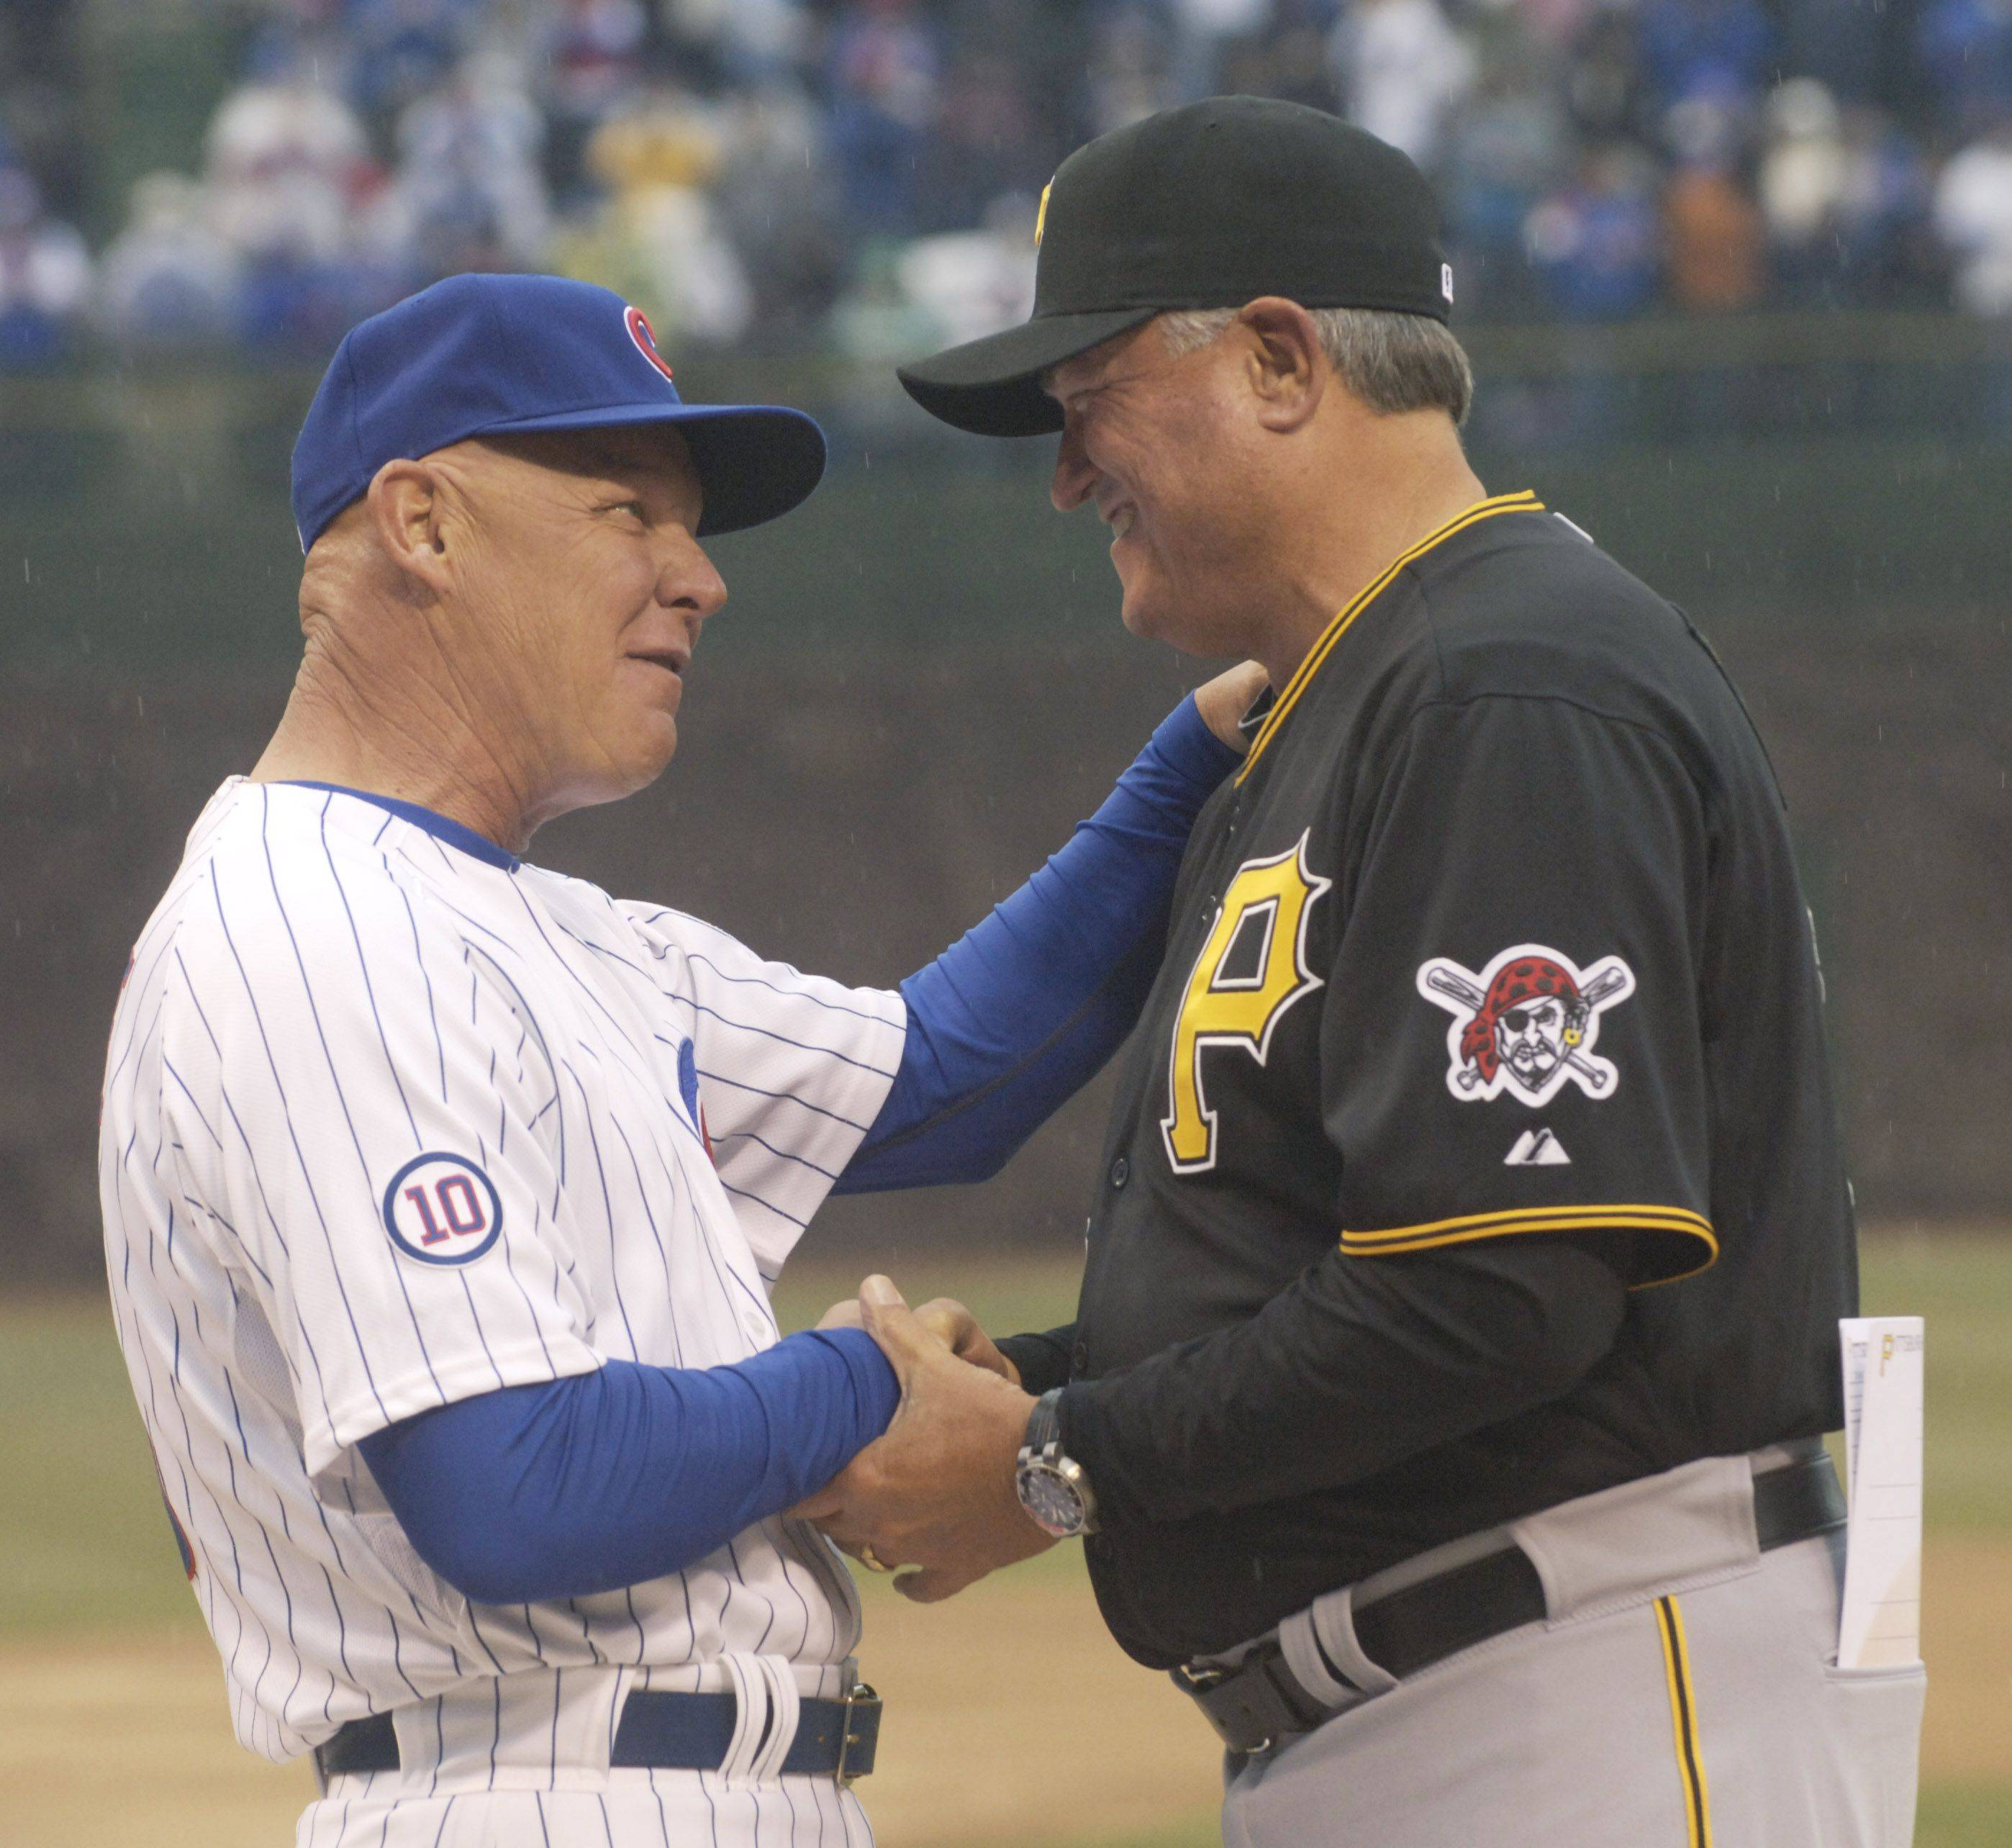 Cubs Manager Mike Quade, left, greets Pirates Manager Clint Hurdle.